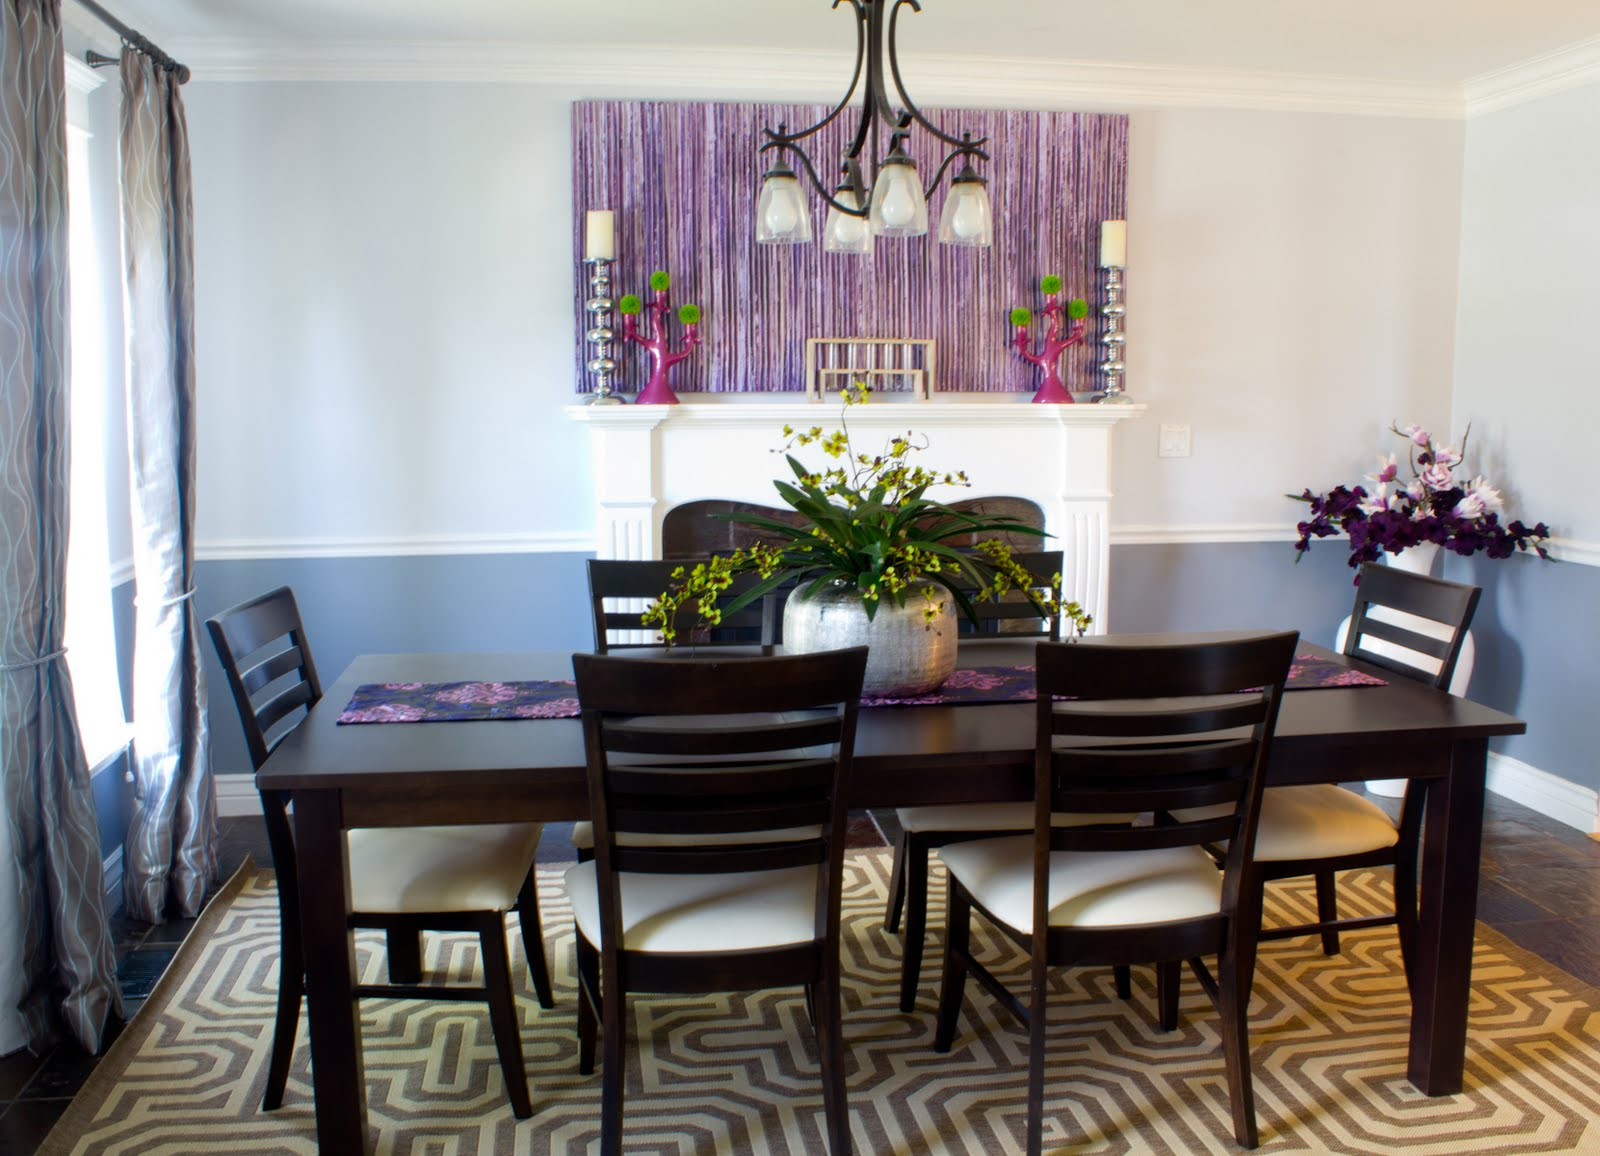 Dining Room Seat Cushions In Natural Design Together With Dark Finishing  And Attractive Patterned Rug Plus Part 52